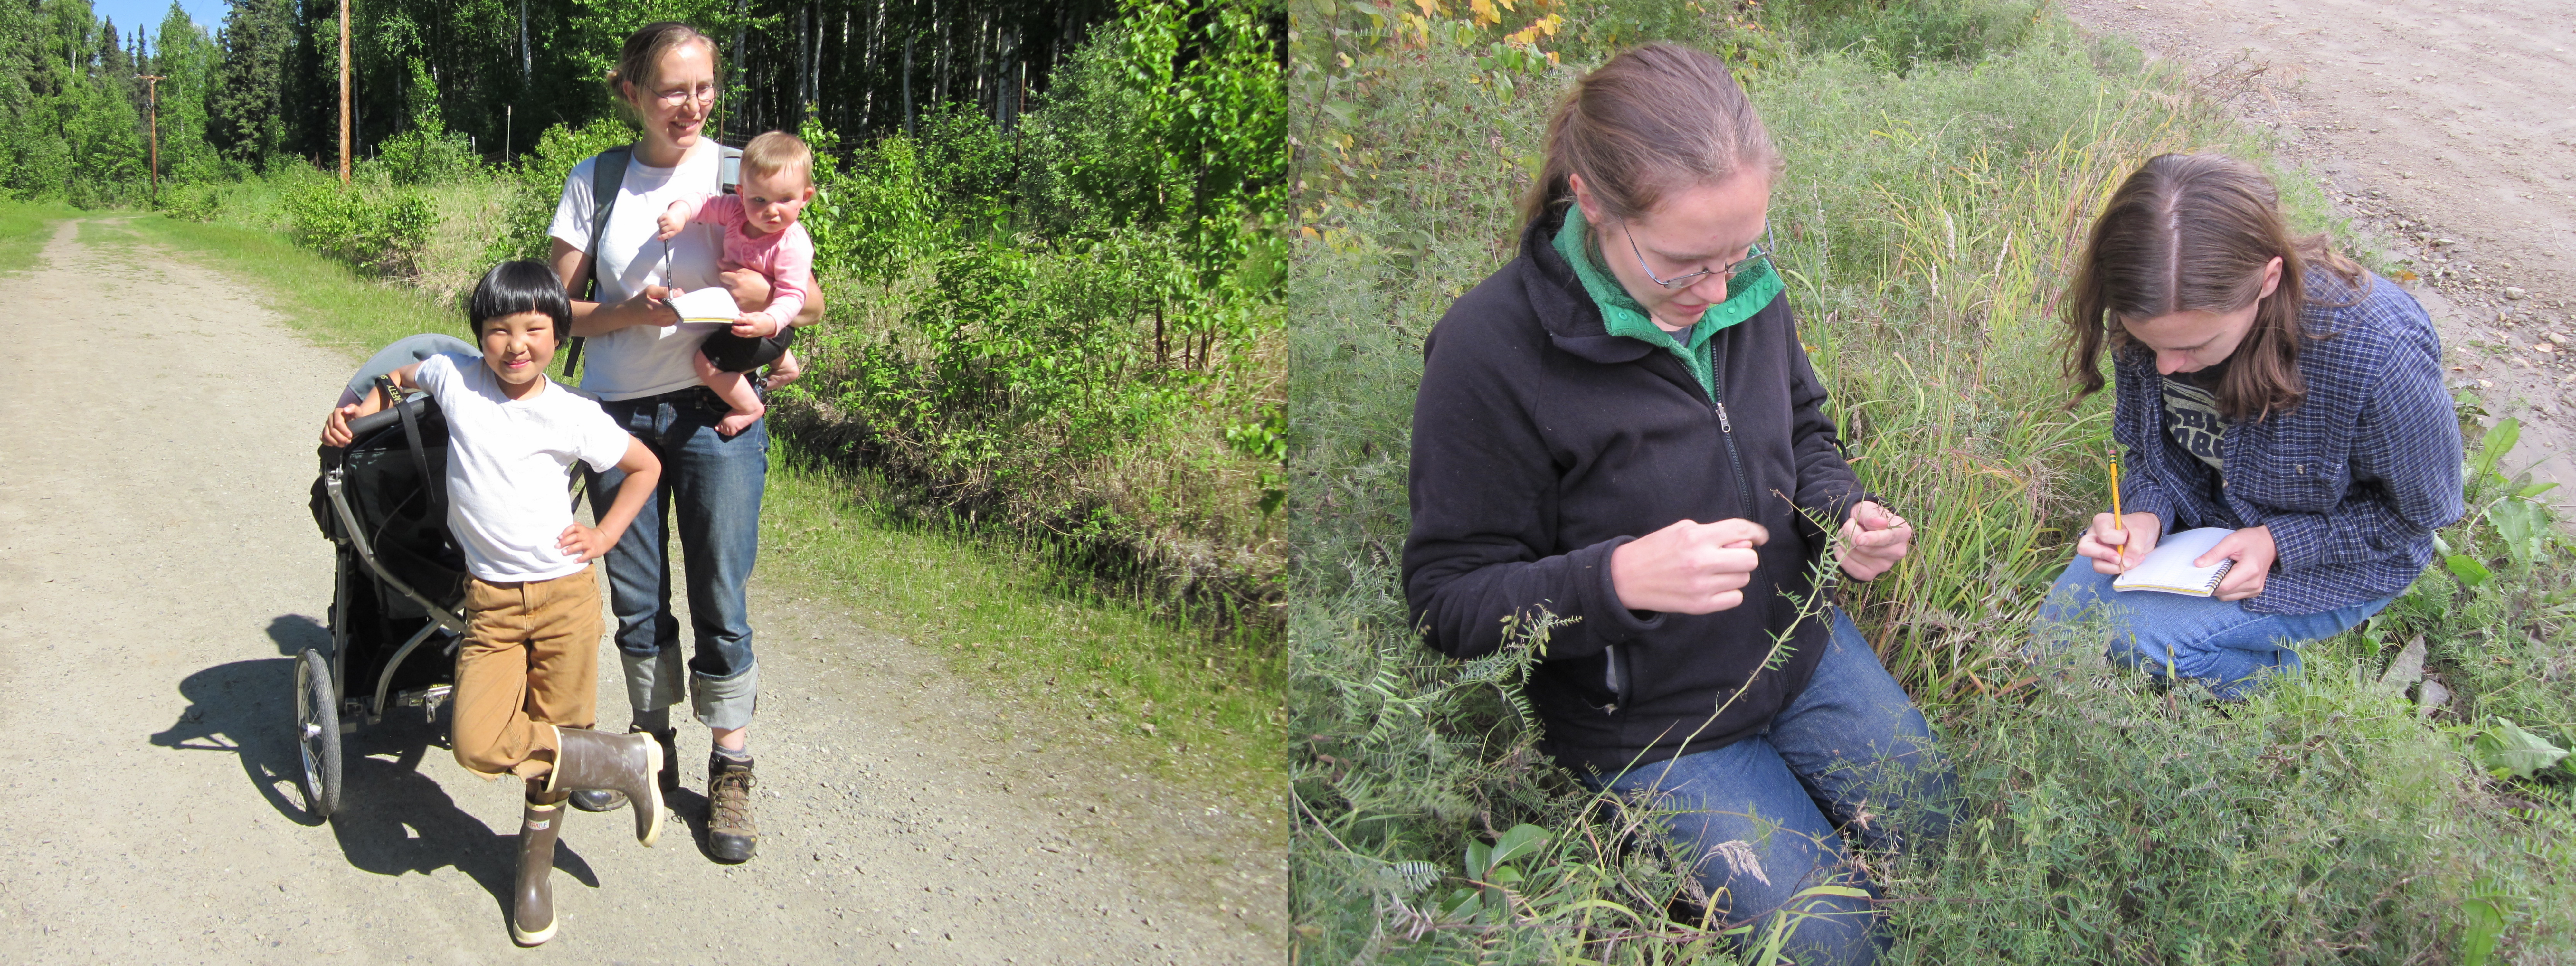 Left: A family expedition; Dr. Katie Spellman, her daughter Izzy, and Dr. Christa Mulder's son, Euan, during one of their weekly monitoring outings. Right: Dr. Katie Spellman with technician Patricia Hurtt collecting data at a disturbed site.